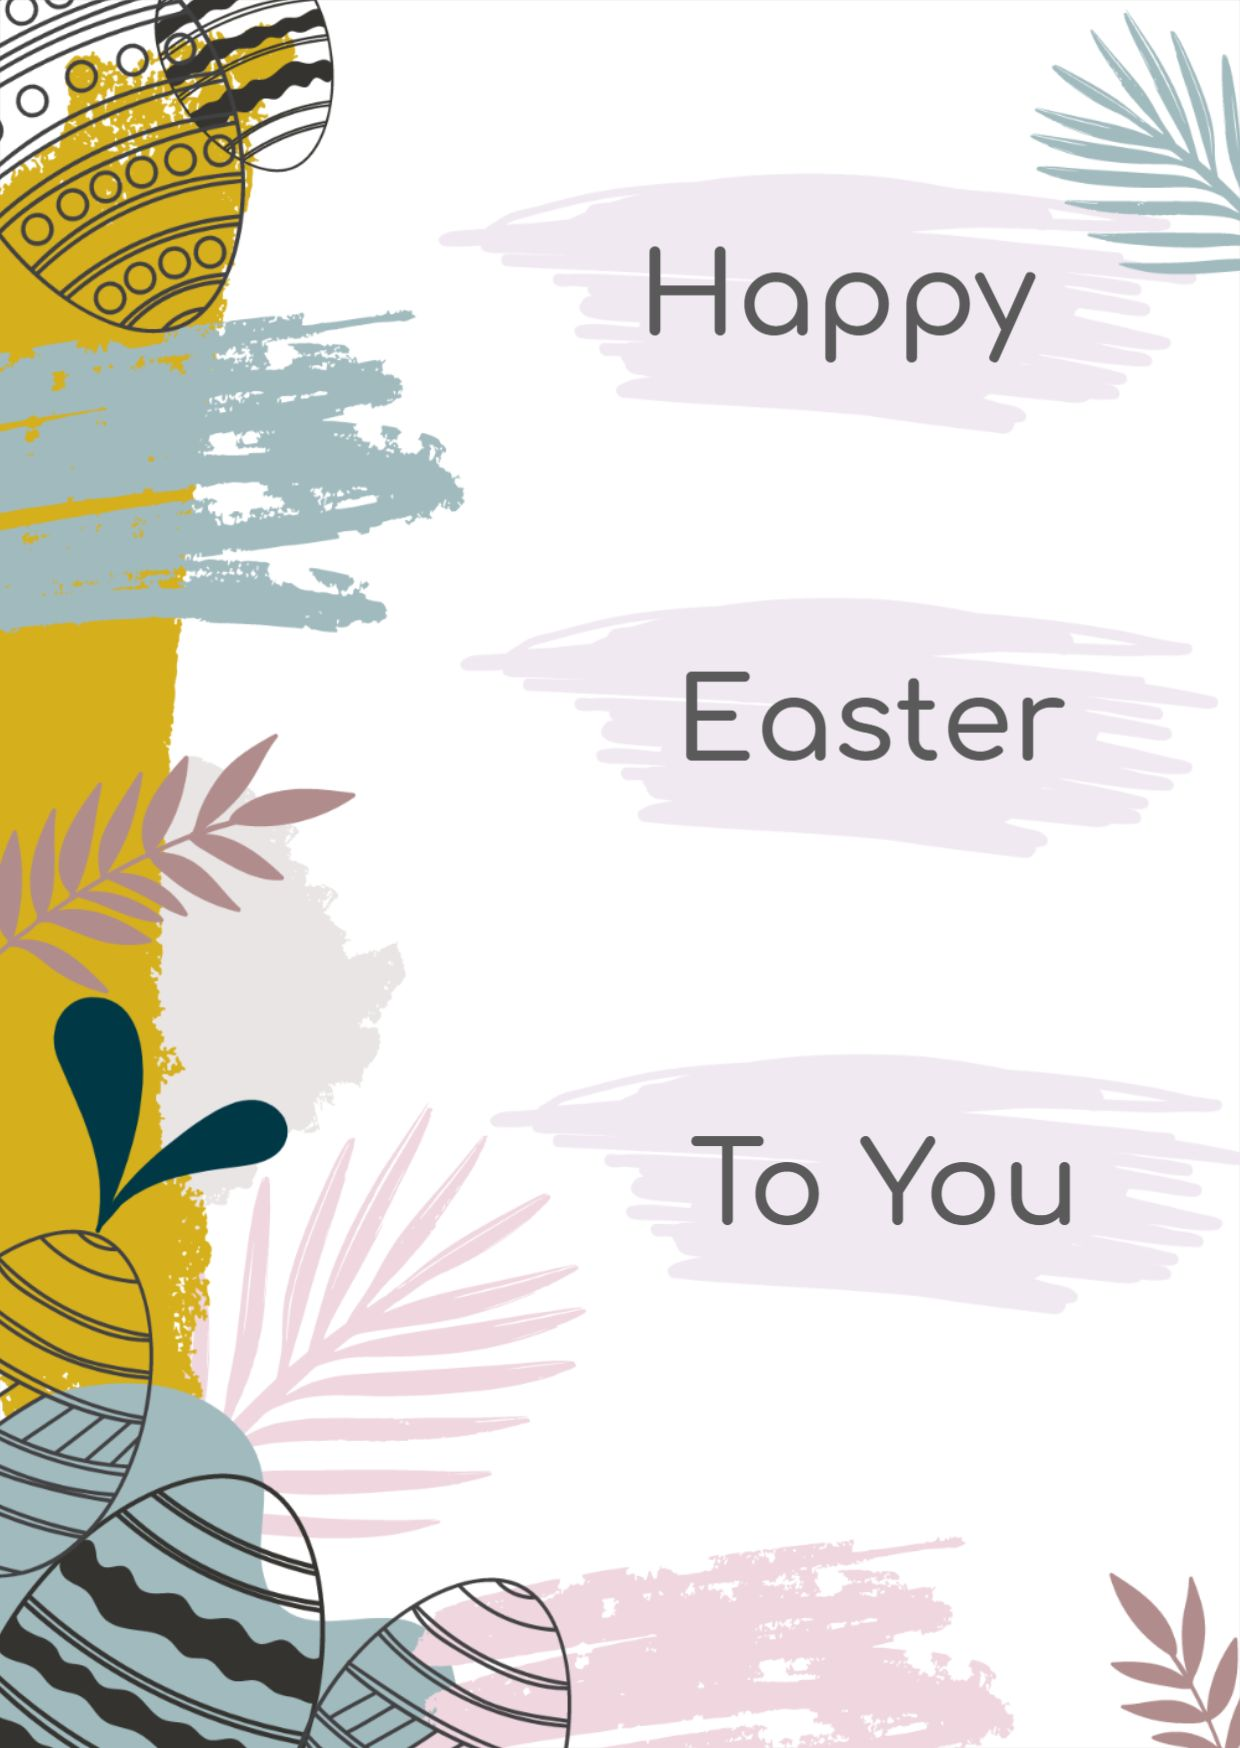 Happy Easter Greeting Card With Easter Eggs